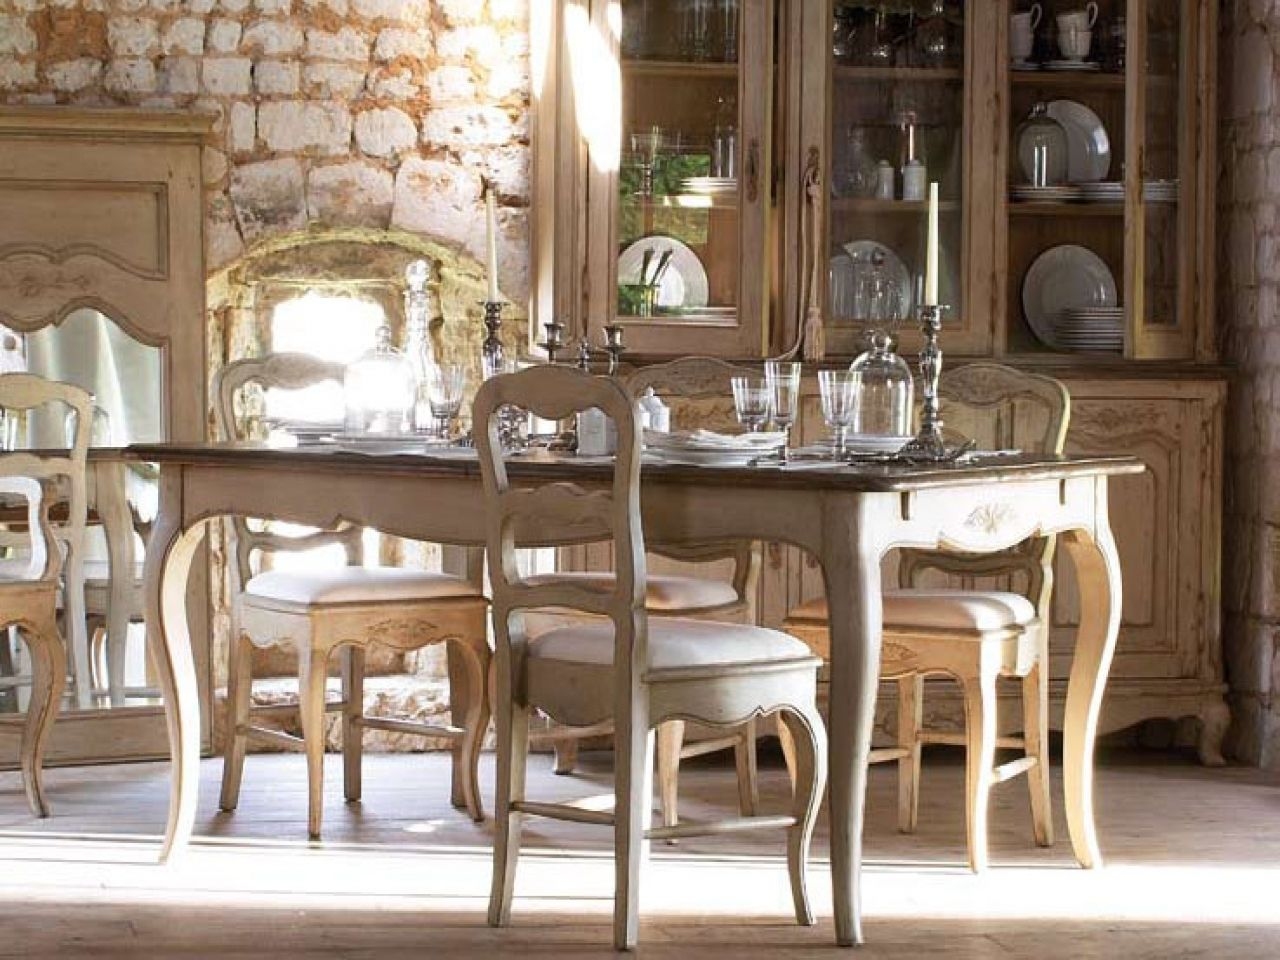 French Country Dining Room Chairs  Httpfmufpi  Pinterest Best French Country Dining Room Chairs Design Ideas